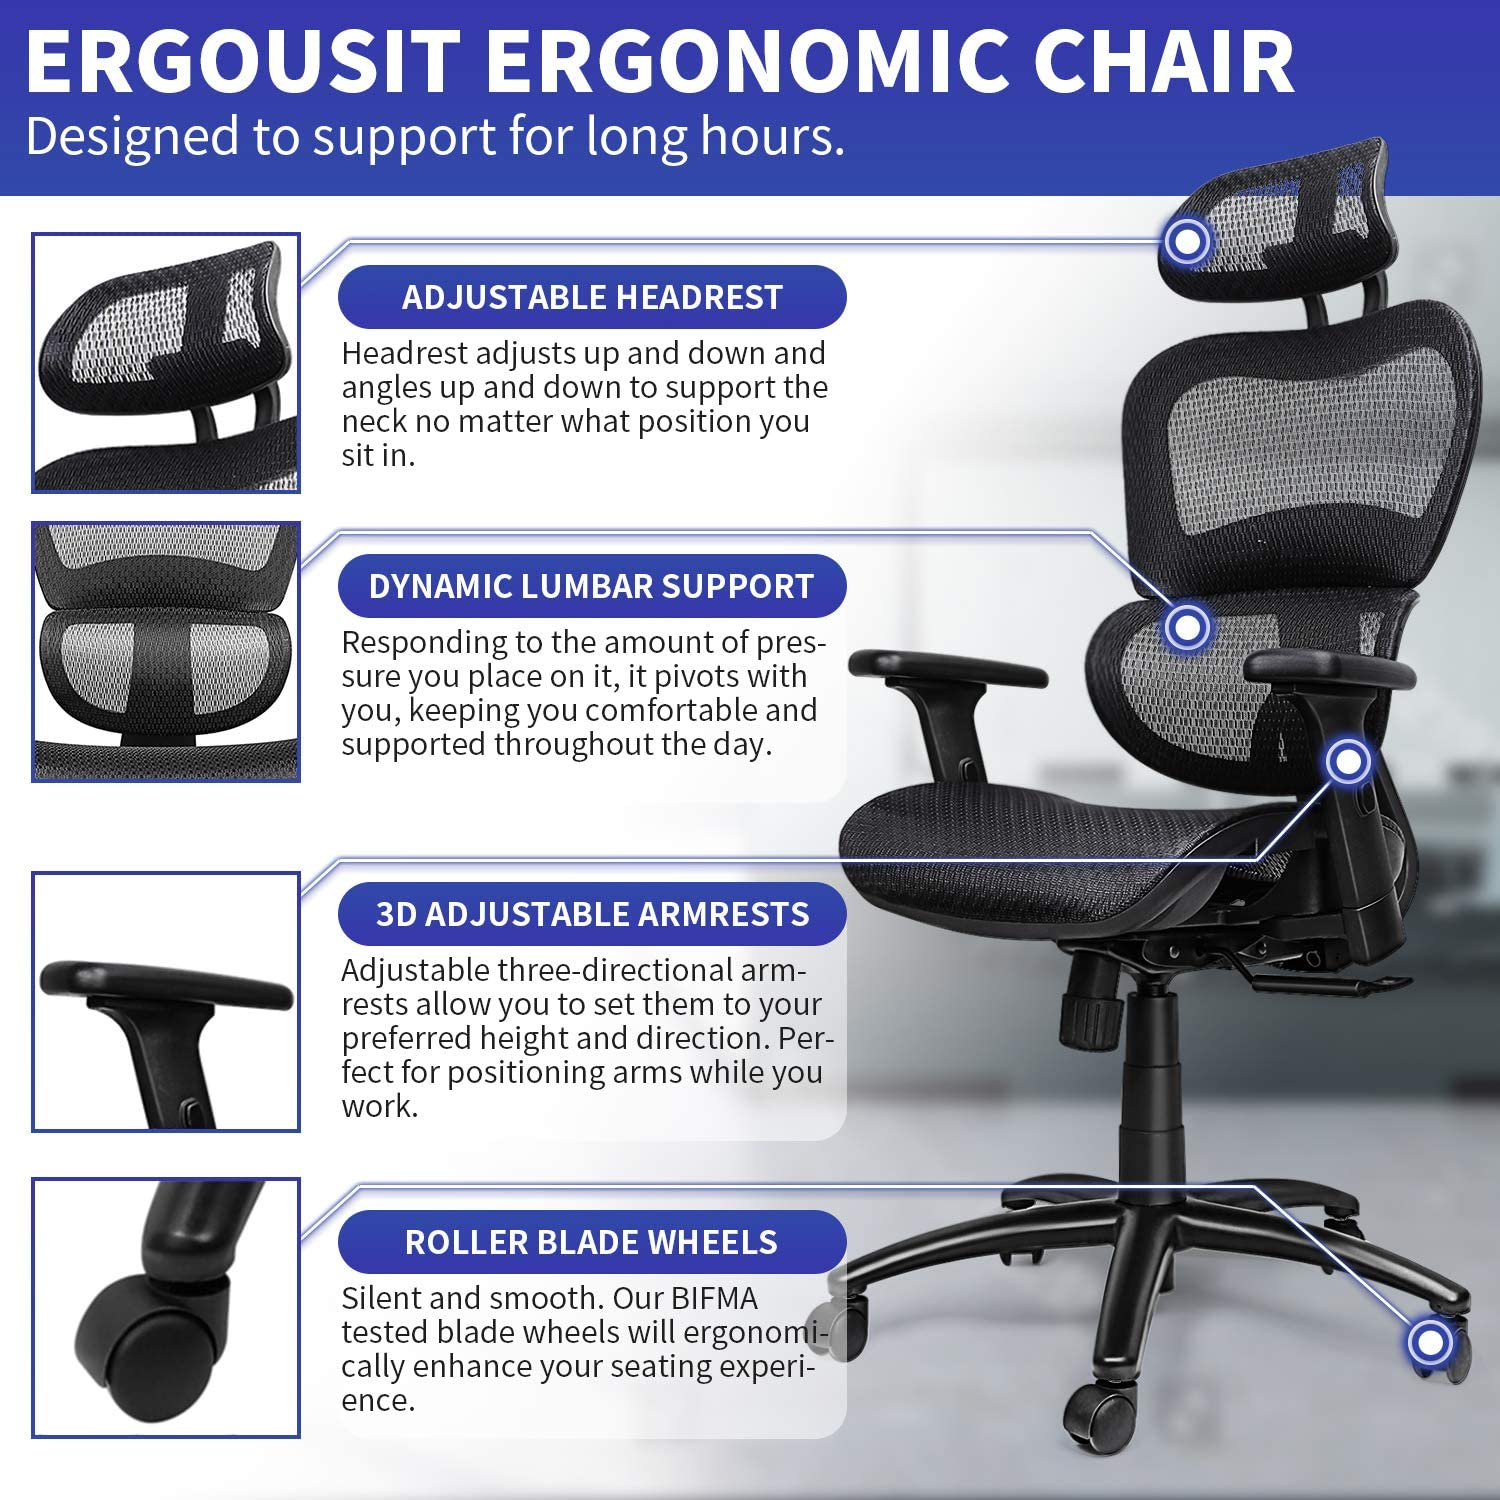 Ergousit Ergonomic Office Desk Chair Adjustable Headrest 3D Flip-up Armrests Seat Height Ergonomic Computer Chair,Executive, Drafting, Gaming or Office Chair (Black): Kitchen & Dining